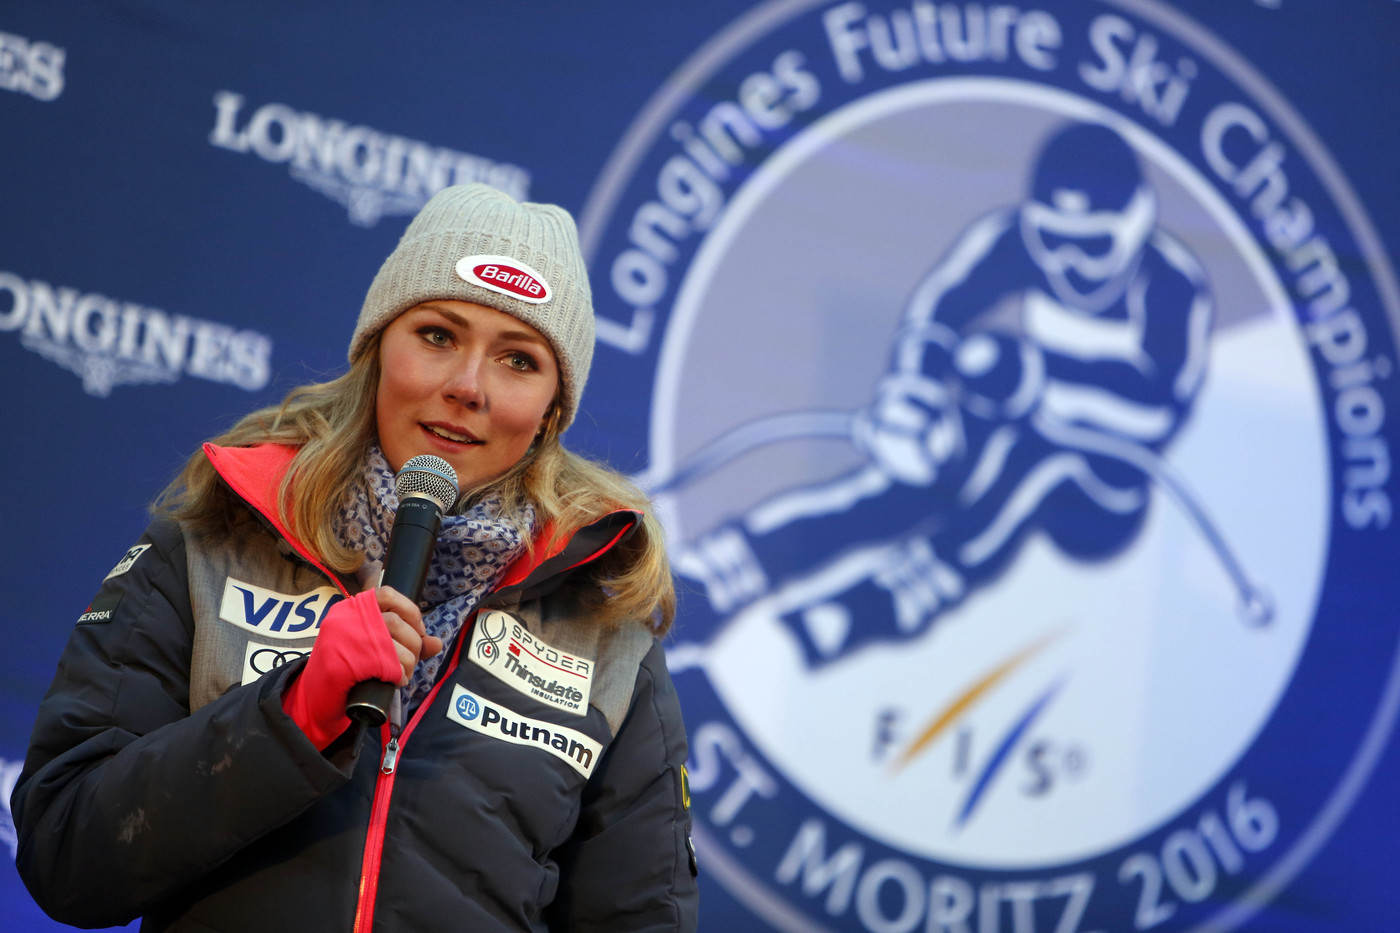 Longines Alpine Skiing Event: A new venue for the third edition of the Longines Future Ski Champions 8